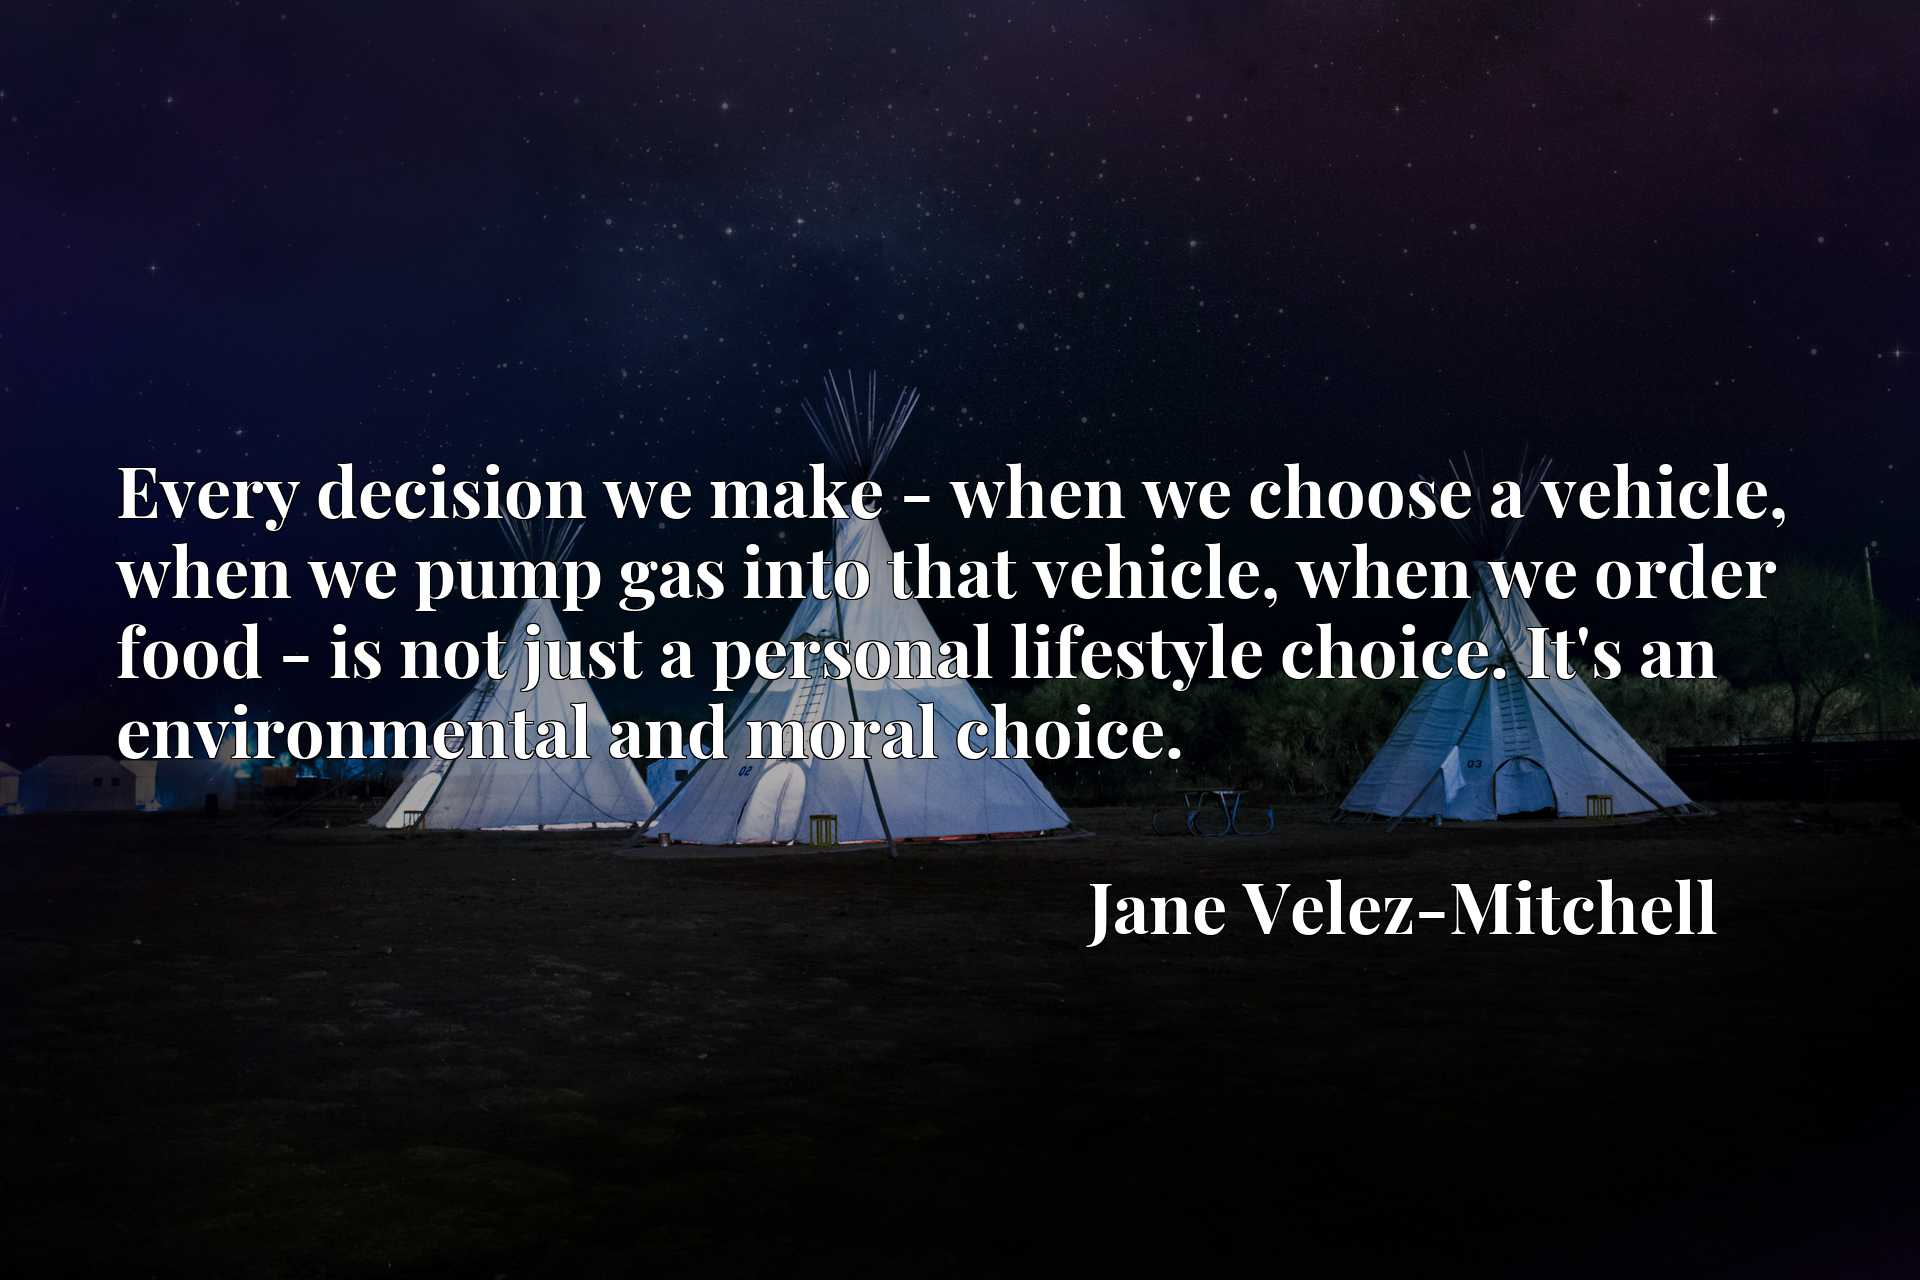 Every decision we make - when we choose a vehicle, when we pump gas into that vehicle, when we order food - is not just a personal lifestyle choice. It's an environmental and moral choice.